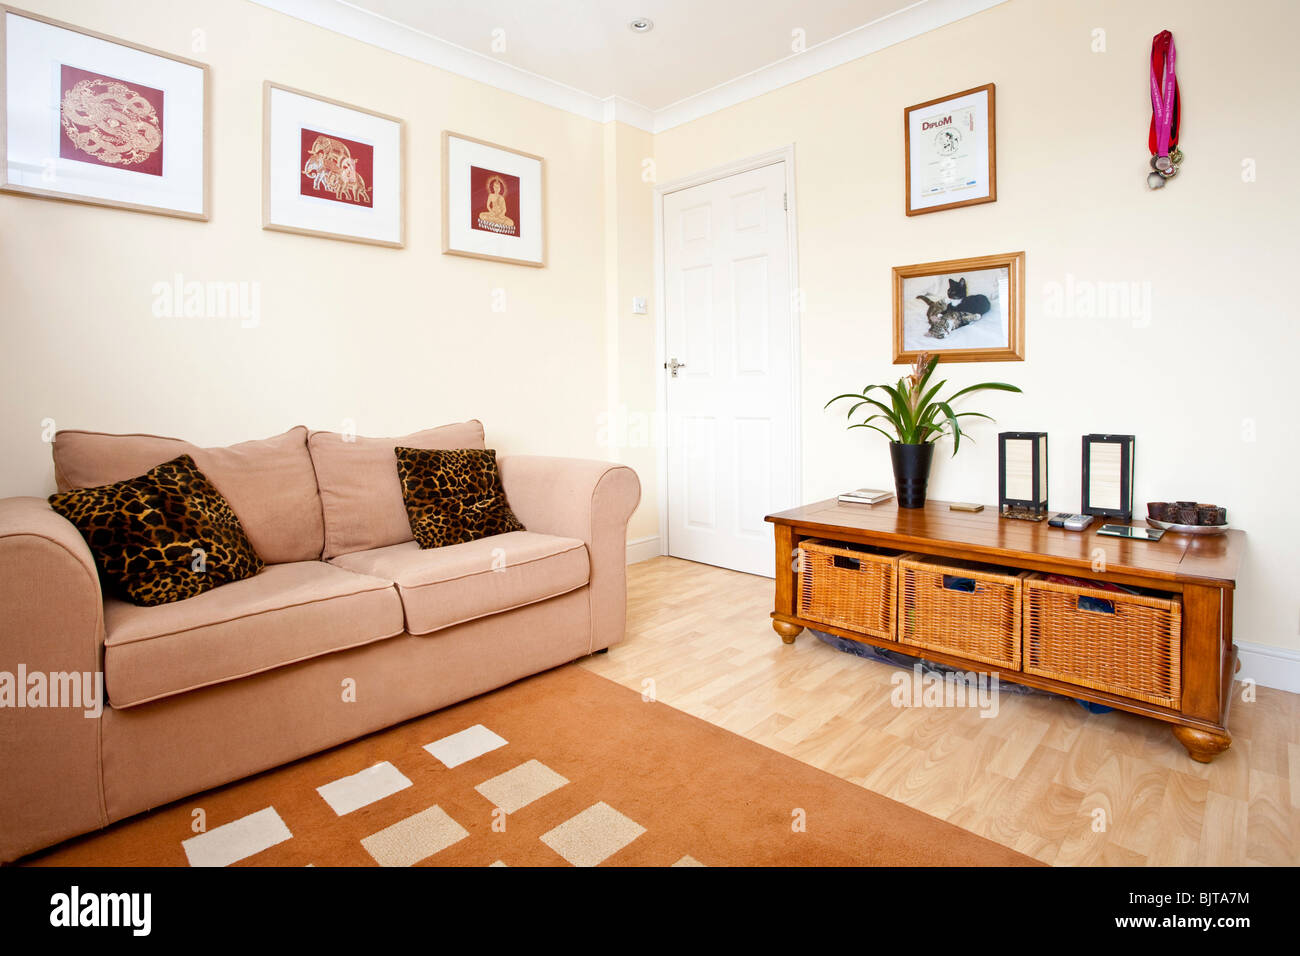 Bright and airy living room. Fetcham, Leatherhead, Surrey, England, UK - Stock Image